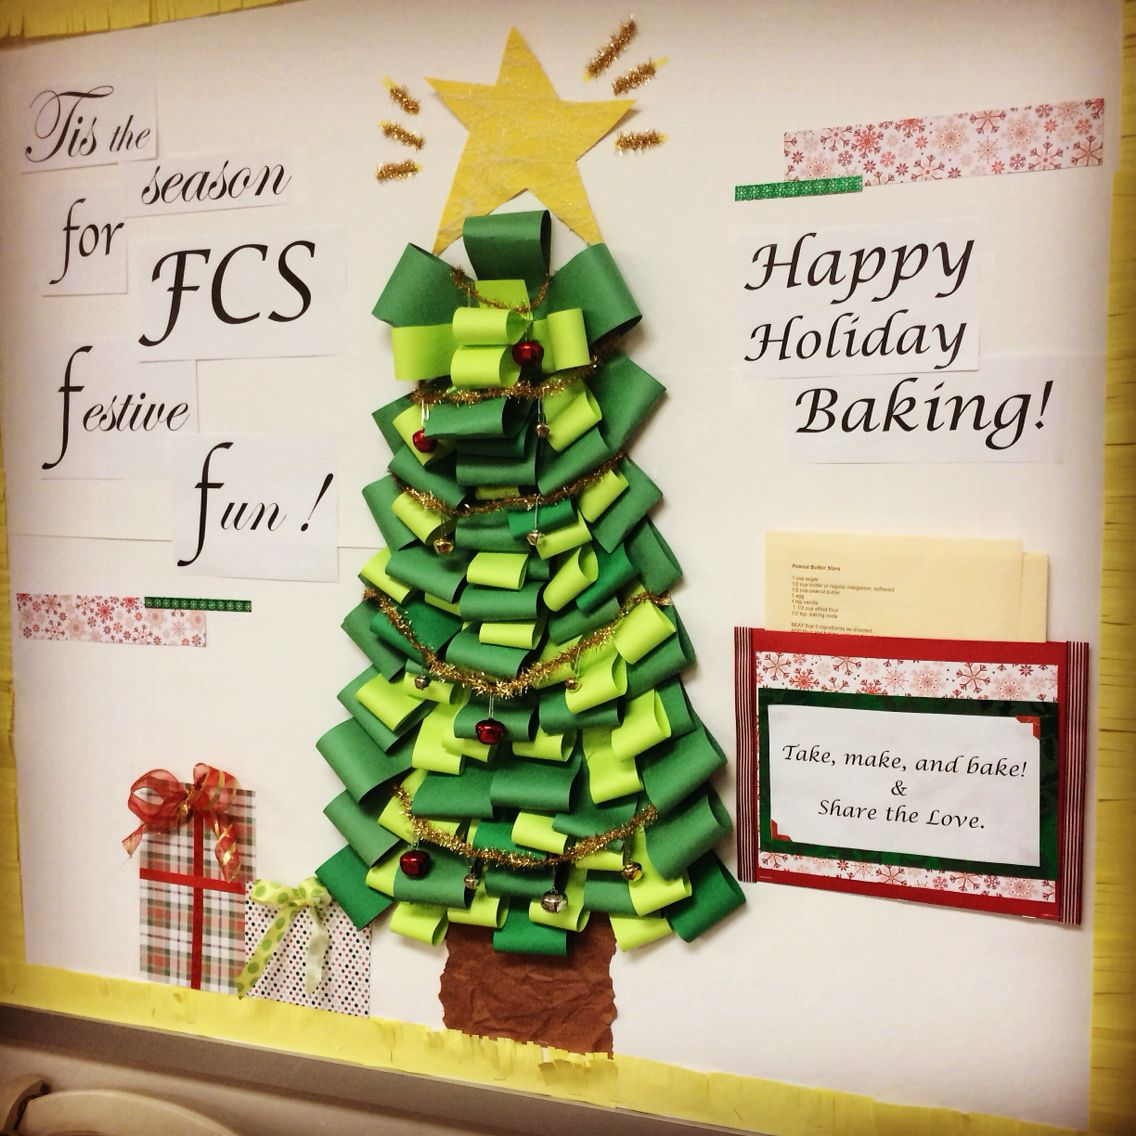 Science Facts Christmas: A Festive Family And Consumer Sciences Bulletin Board For